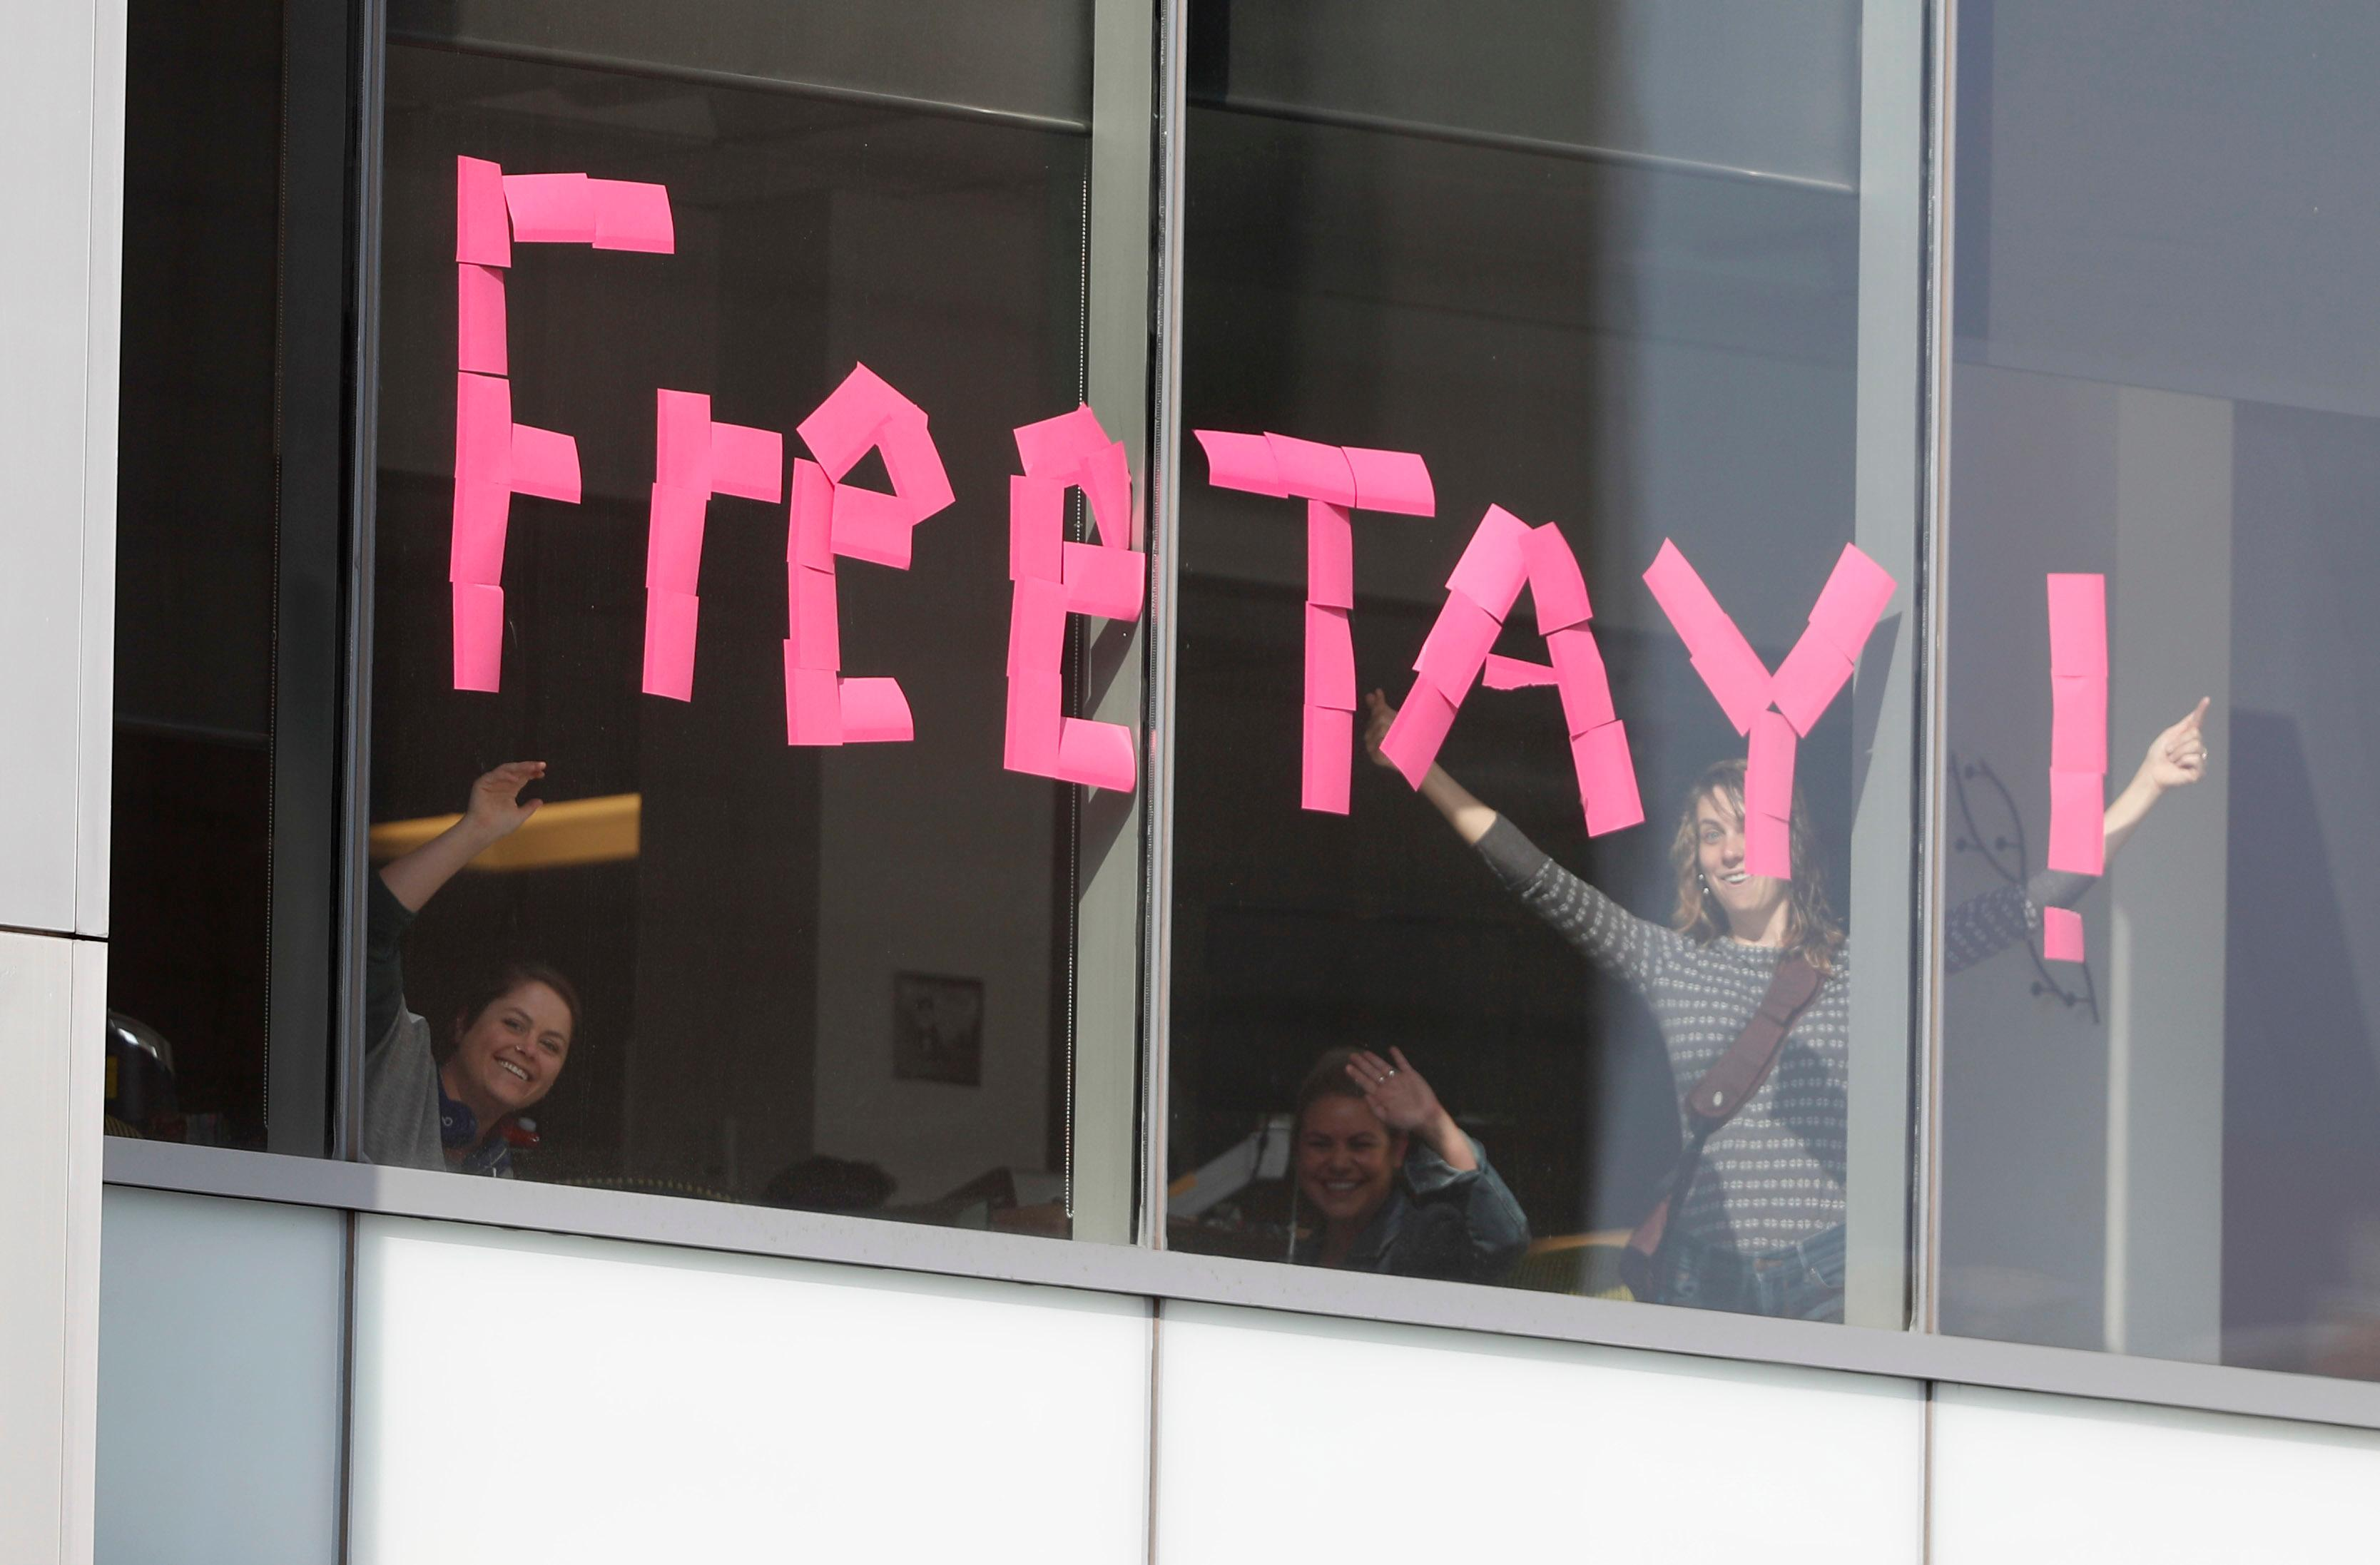 Workers put up sign in support of pop singer Taylor Swift in an office building across the street from the federal courthouse in Denver on Tuesday, Aug. 8, 2017, during the jury selection phase in a civil trial to determine whether a radio host groped Swift. (AP Photo/David Zalubowski)